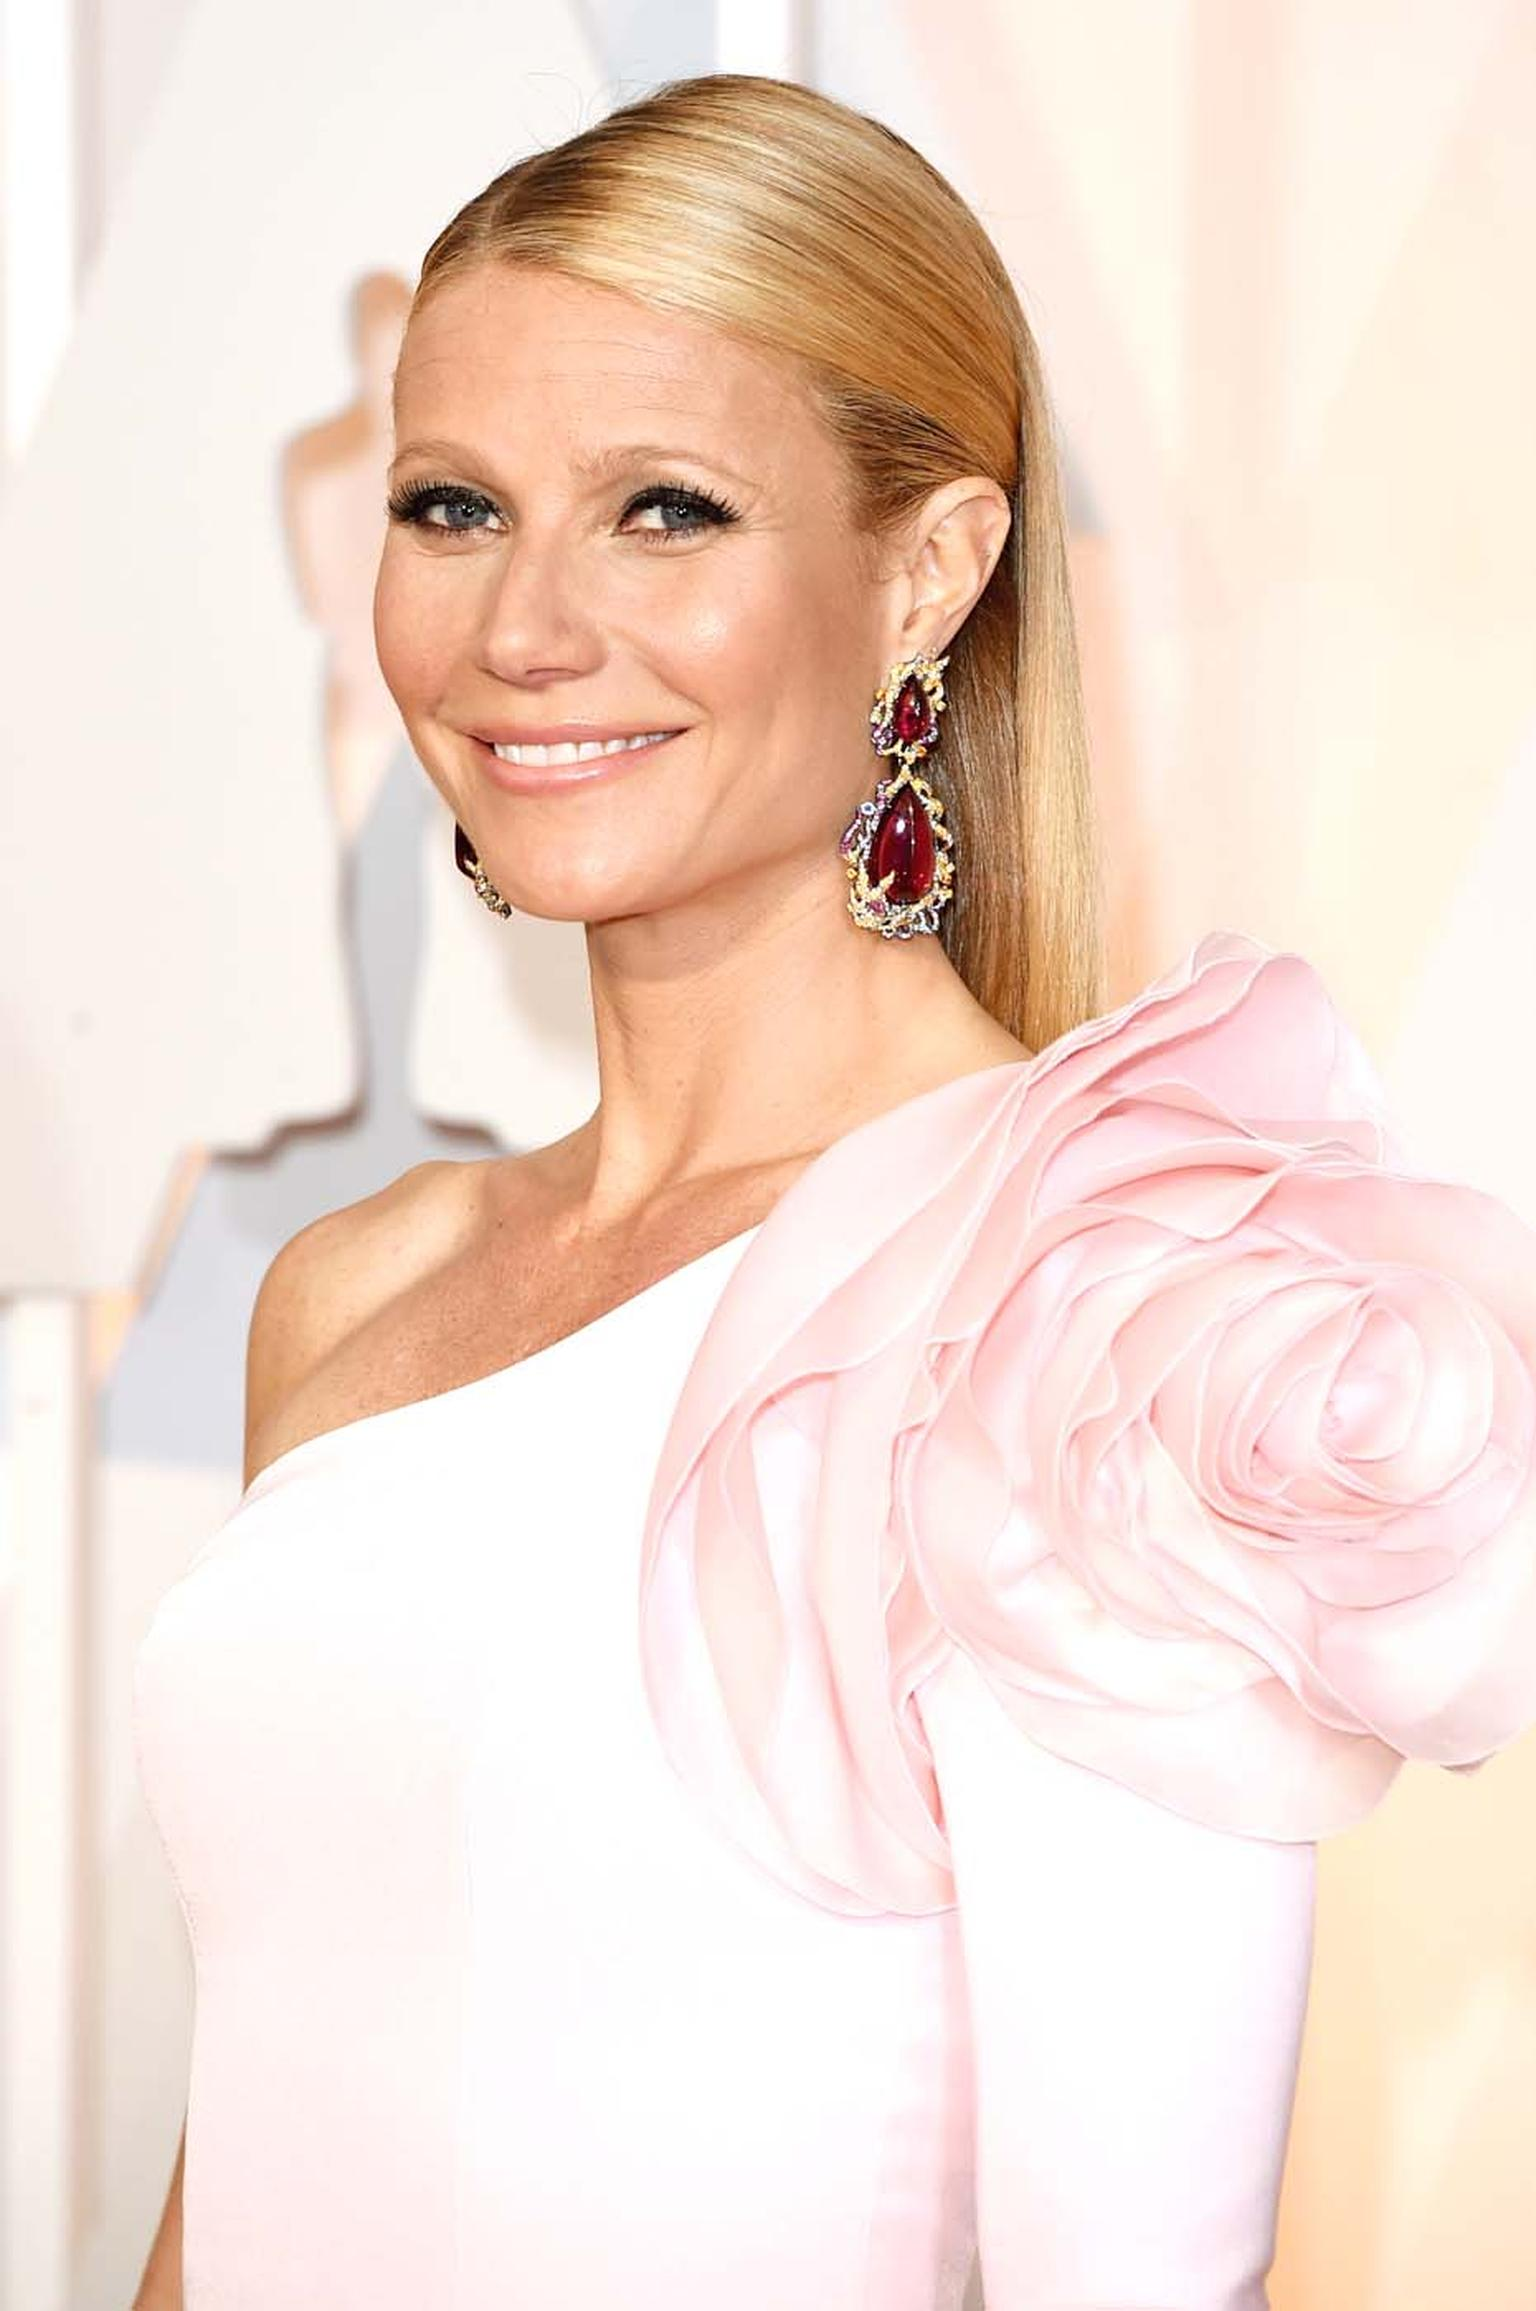 Gwyneth Paltrow in Anna Hu Fire Phoenix rubellite earrings